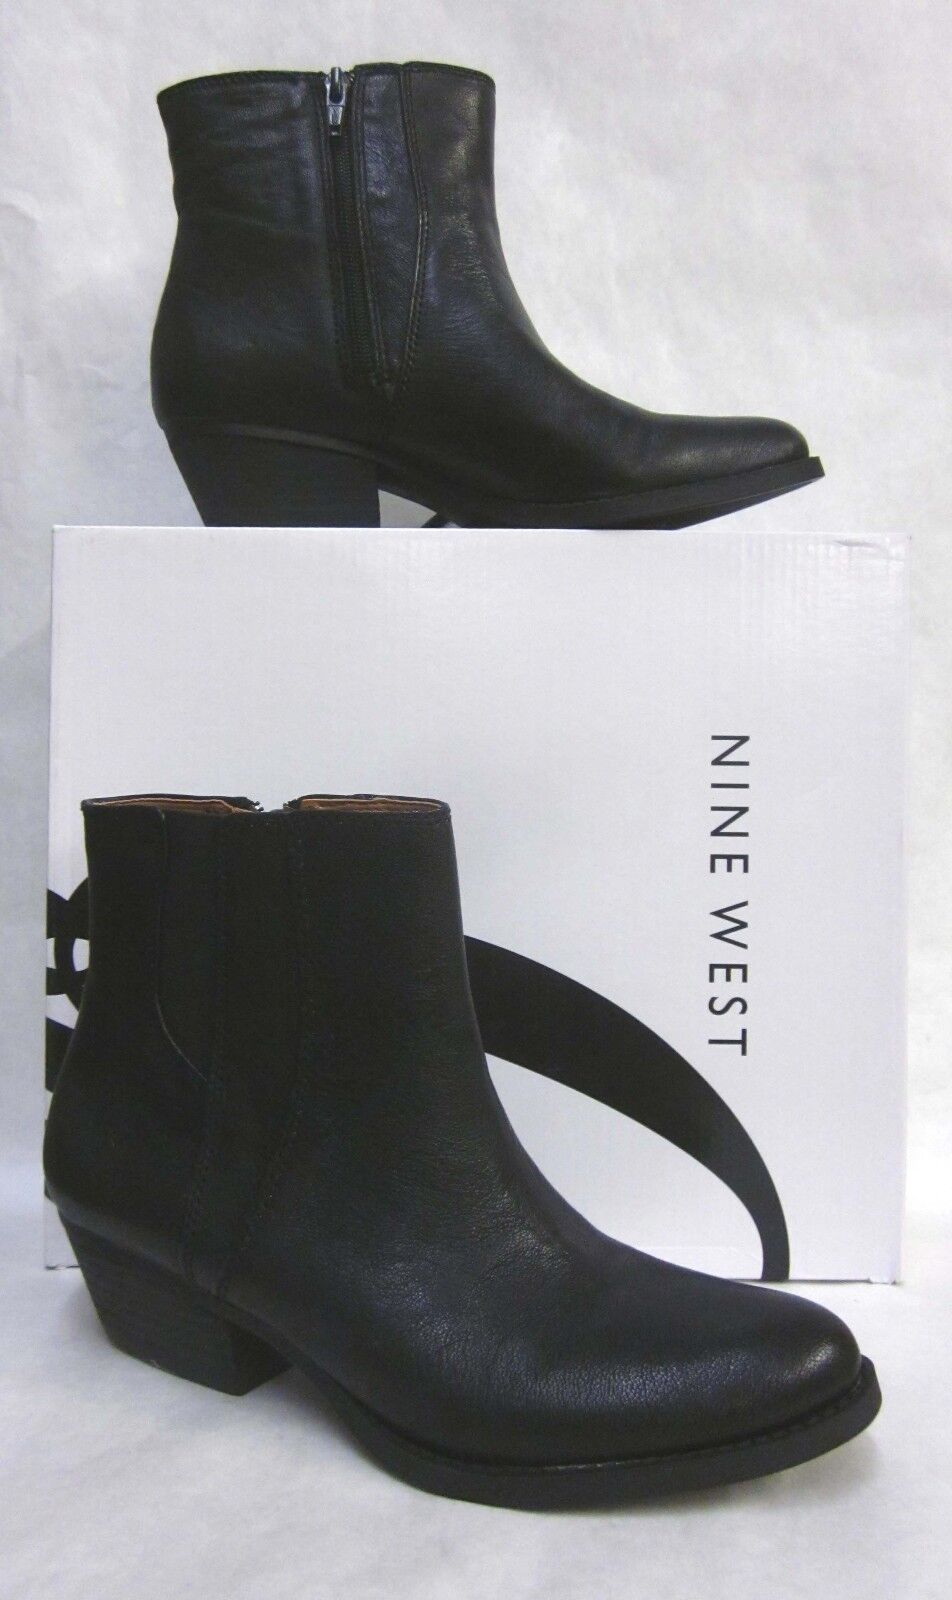 Nine West Sloane Black Ankle Boots - size 7